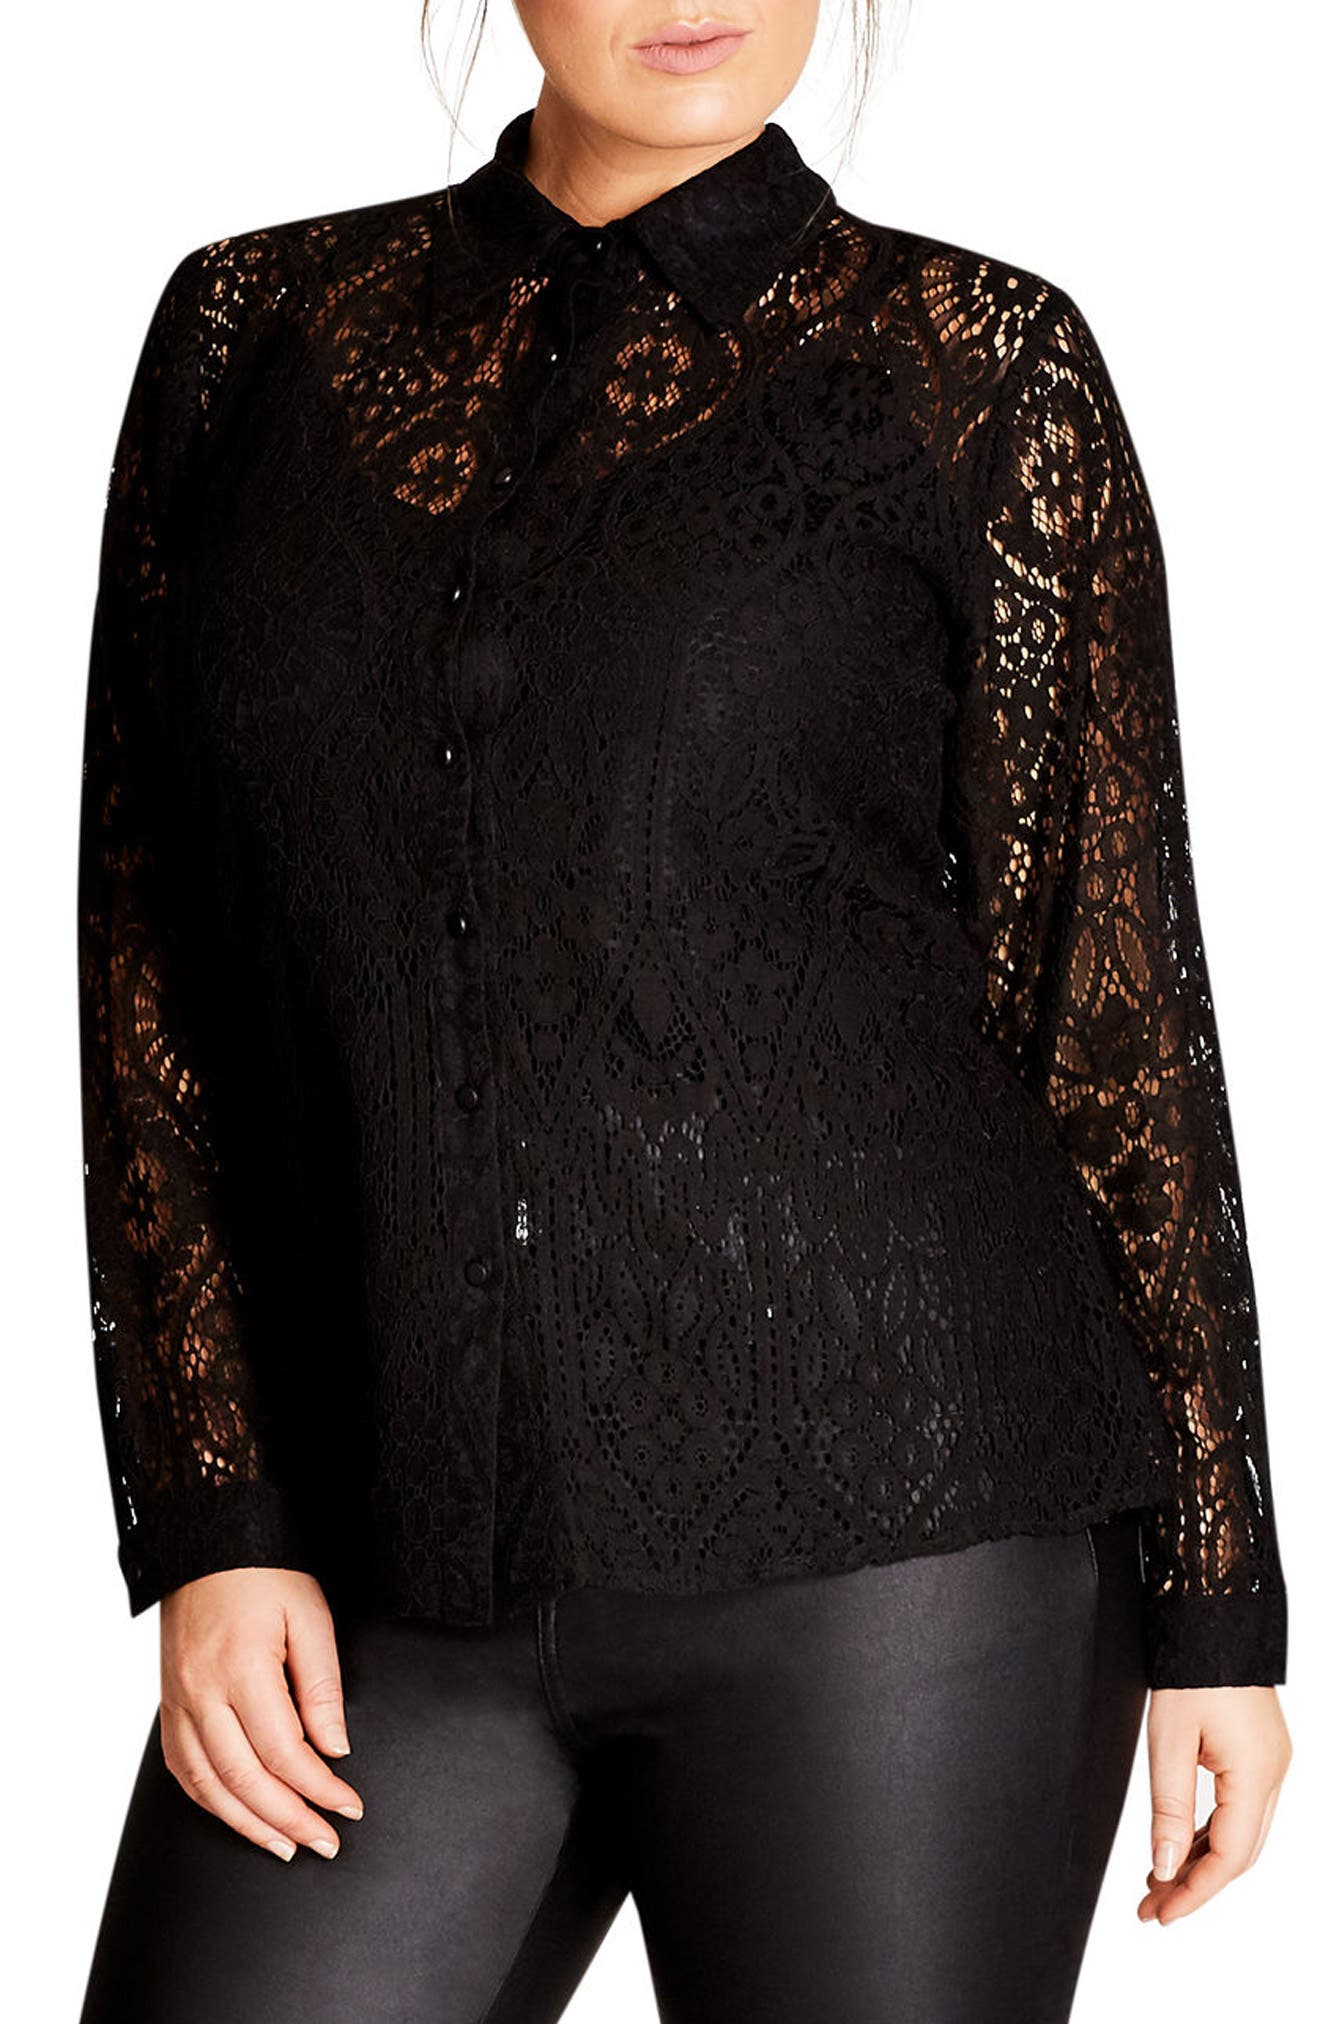 Alternate Image 1 Selected - City Chic Lace Shirt (Plus Size)